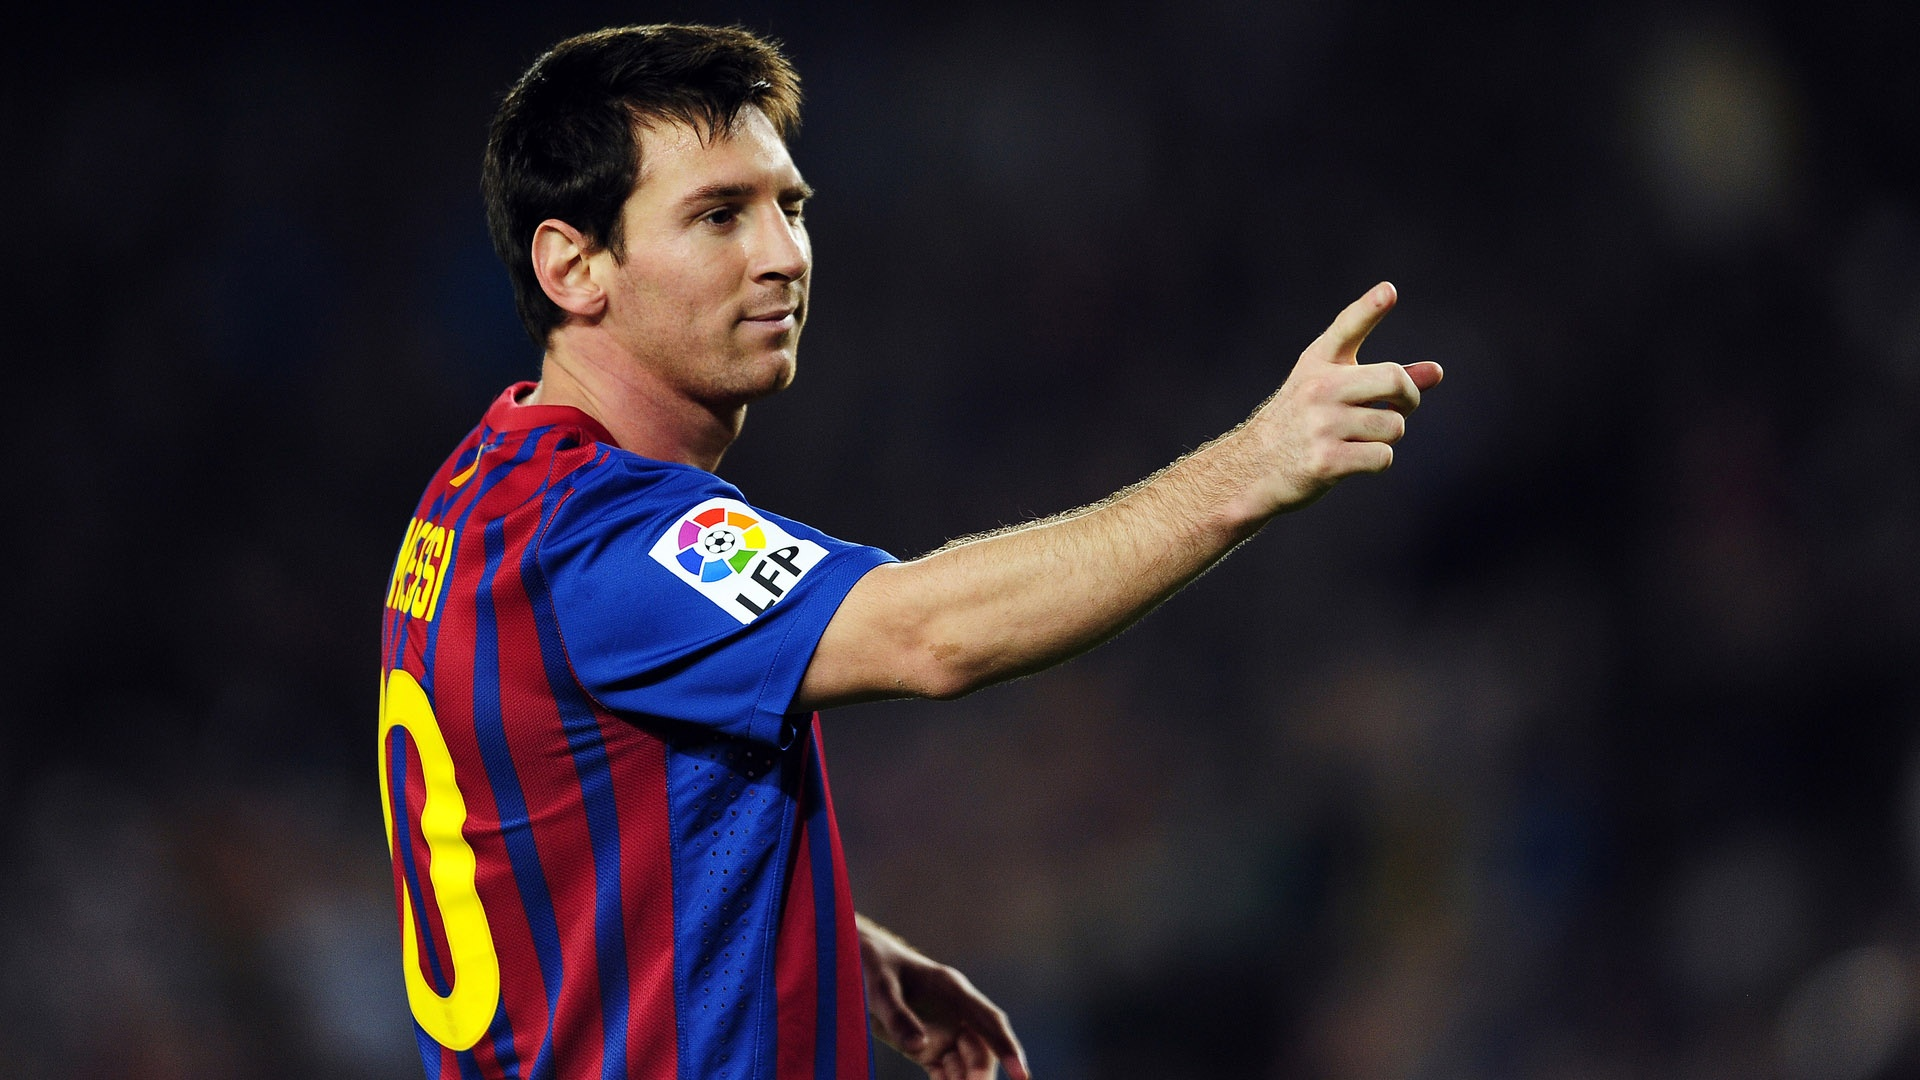 Download 40 Lionel Messi HD Wallpapers 1920x1080